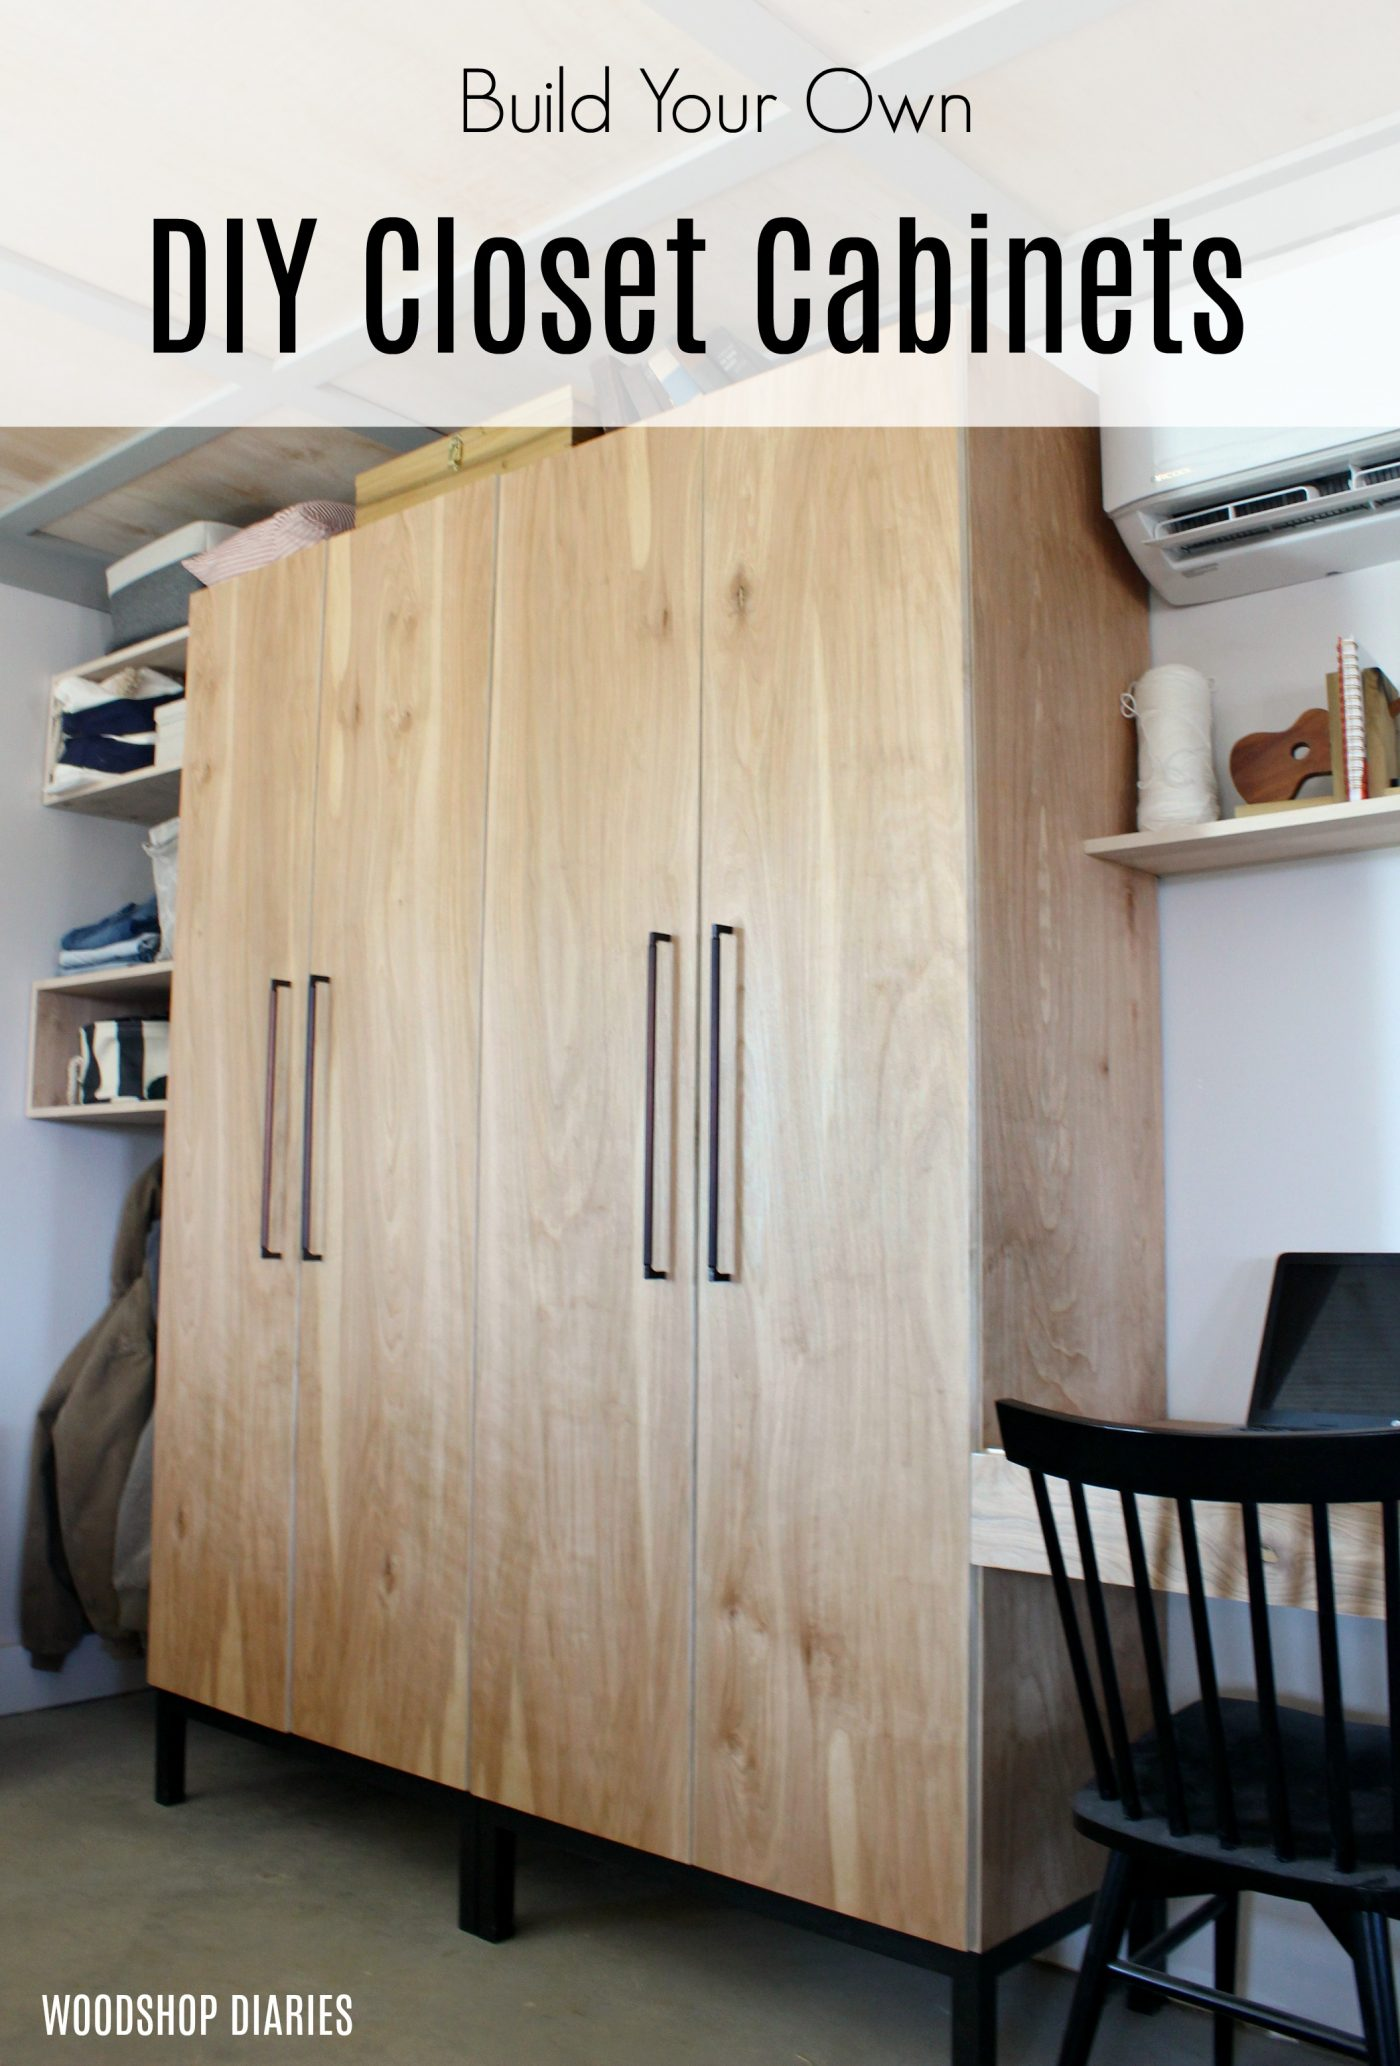 DIY Closet Cabinet With Adjustable Shelves, Shoe Rack, and